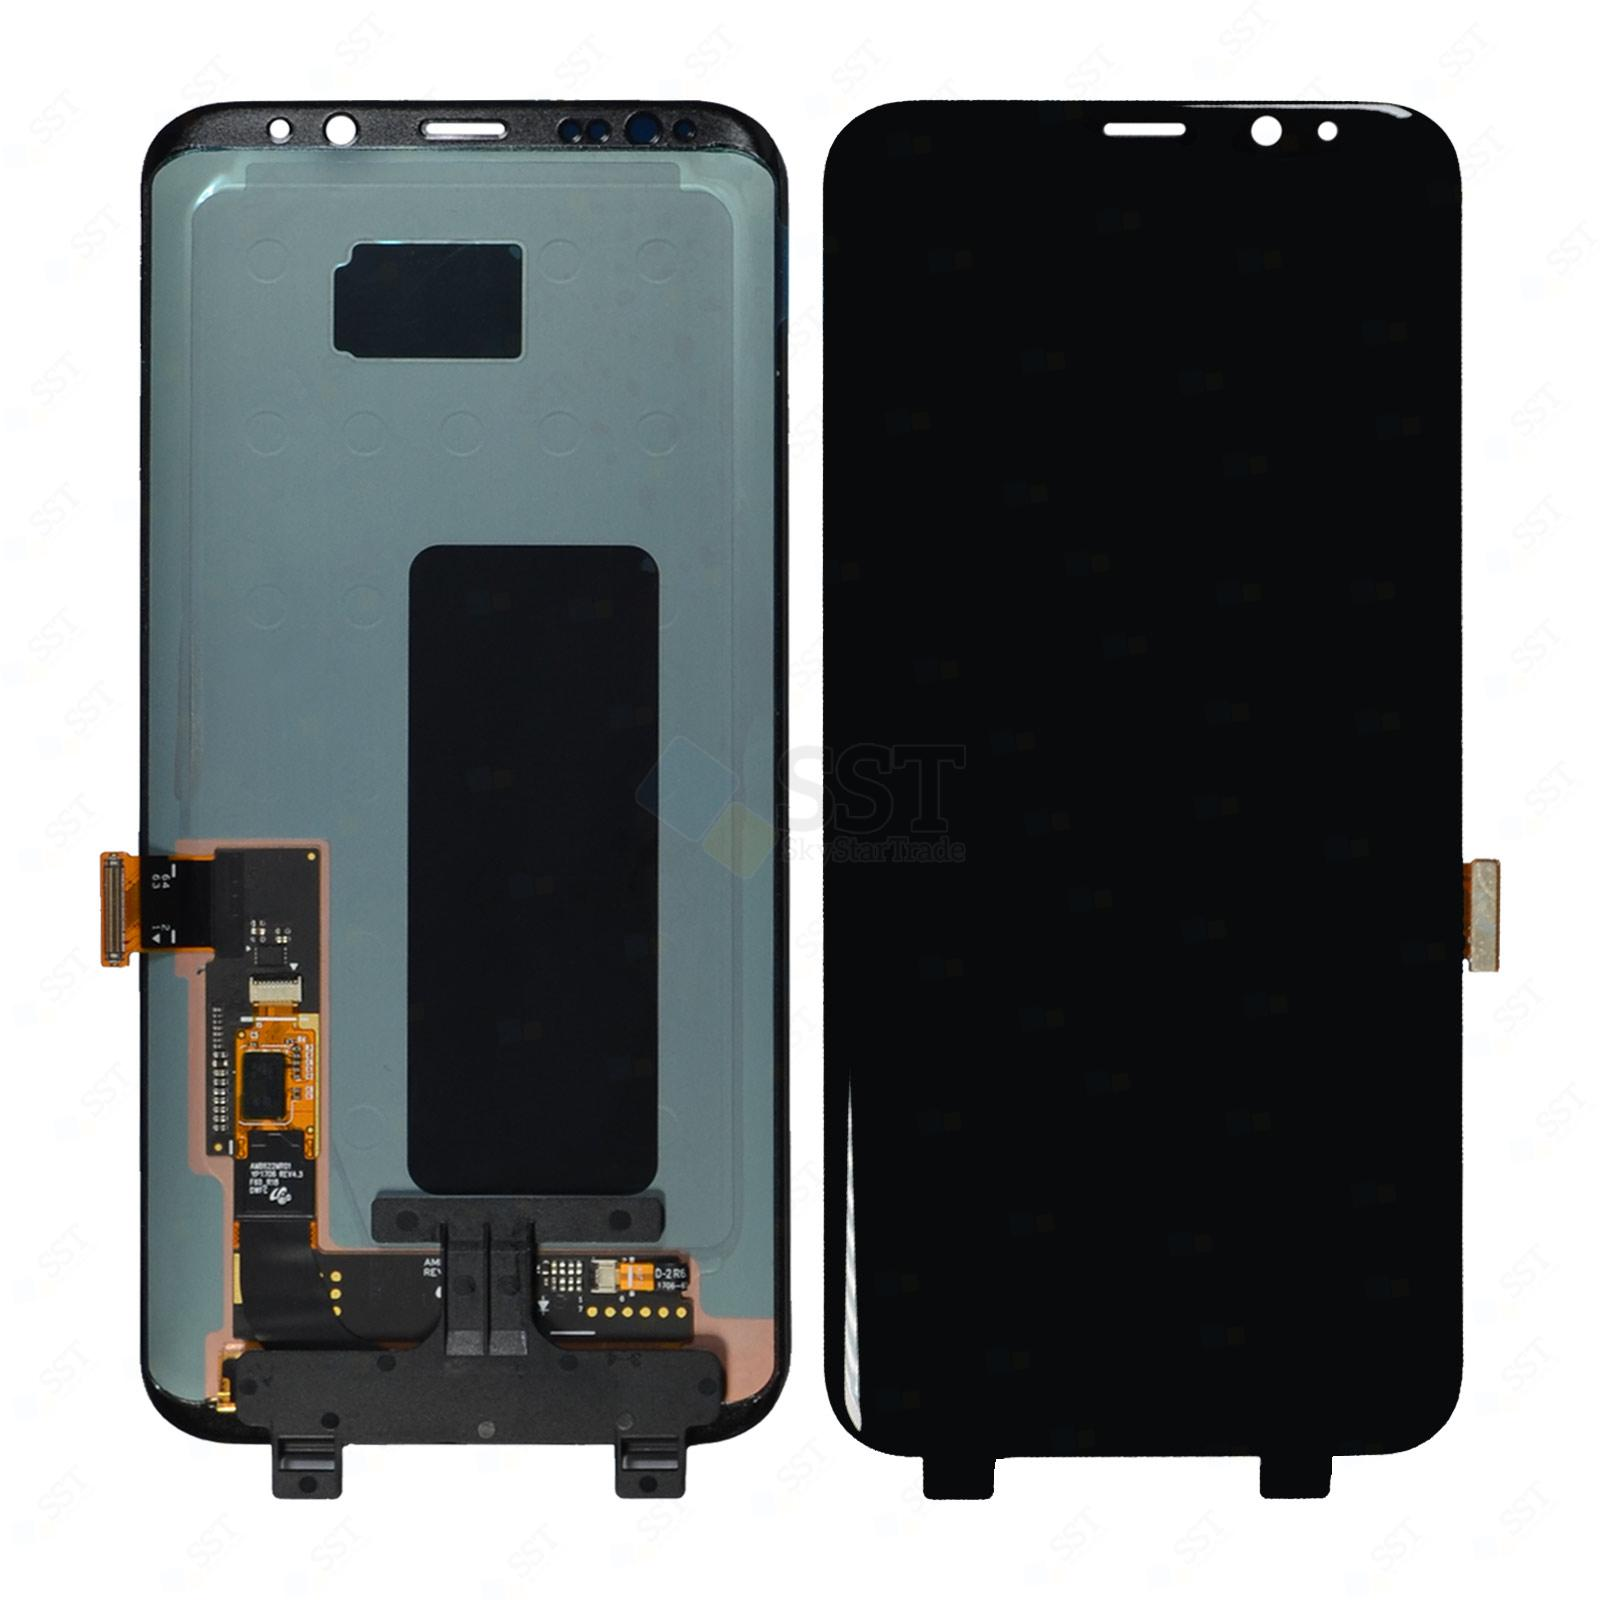 Samsung Galaxy S8 Plus G9550 G955A G955F G955FD G955P G955R4 G955T G955U G955V G955W LCD Screen Digitizer, Black for All Colors